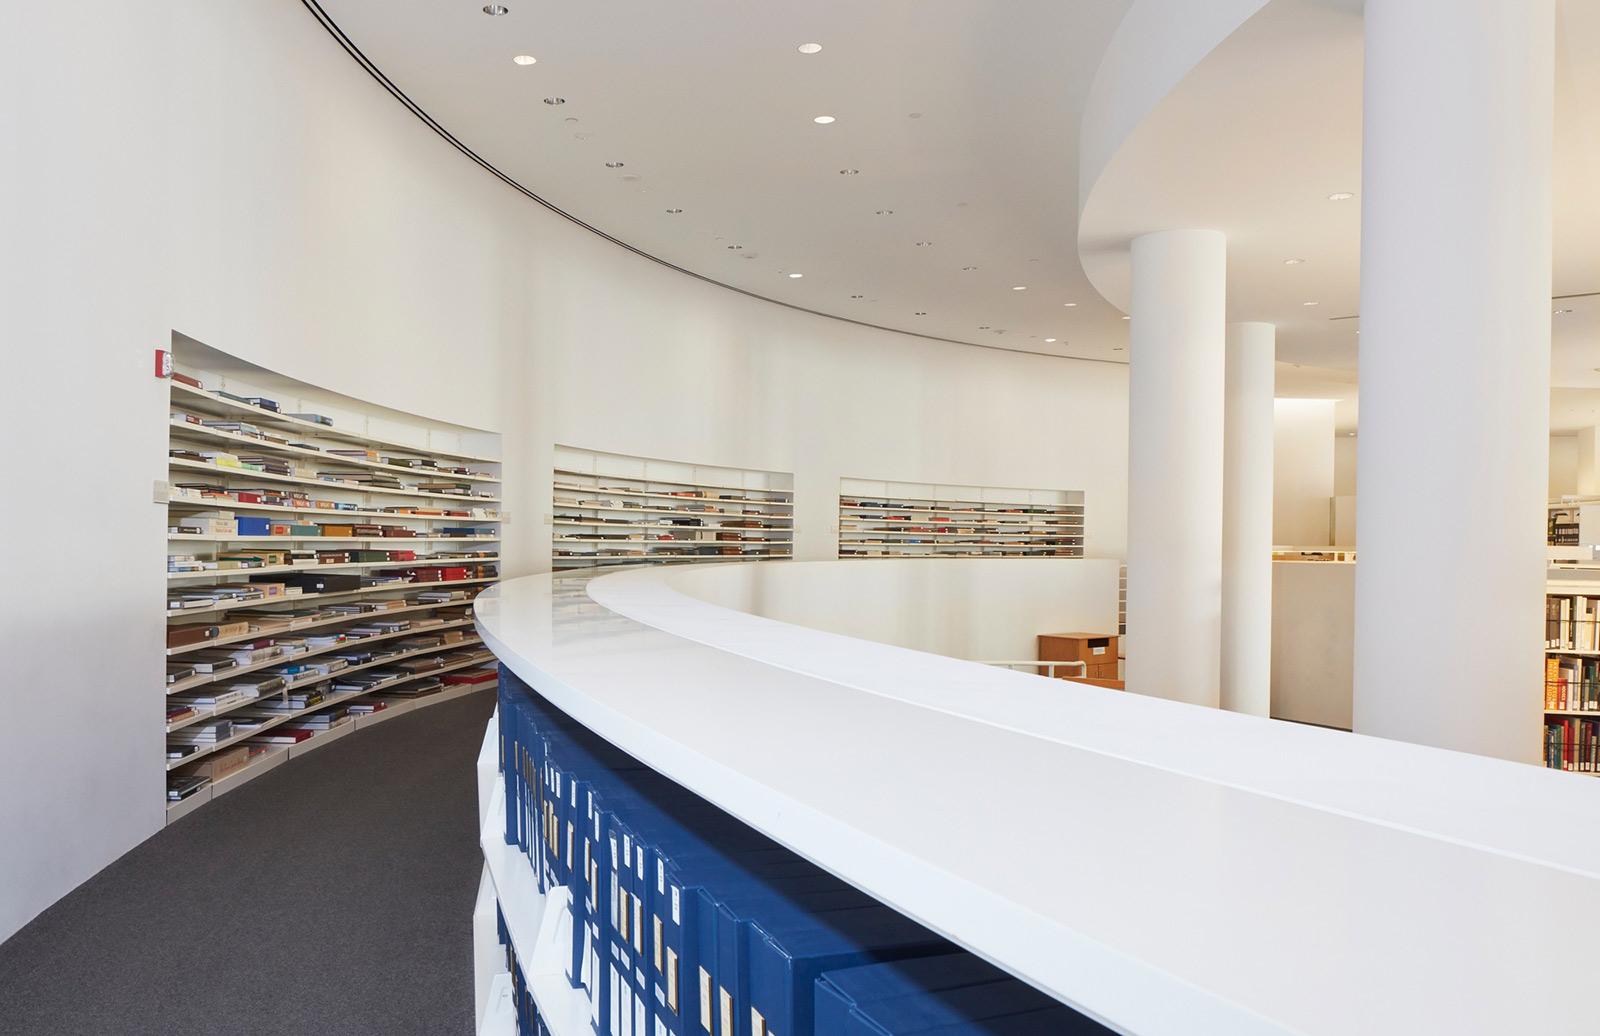 Photo inside the Getty Center library showing its curve white walls and shelves of horizontal books.